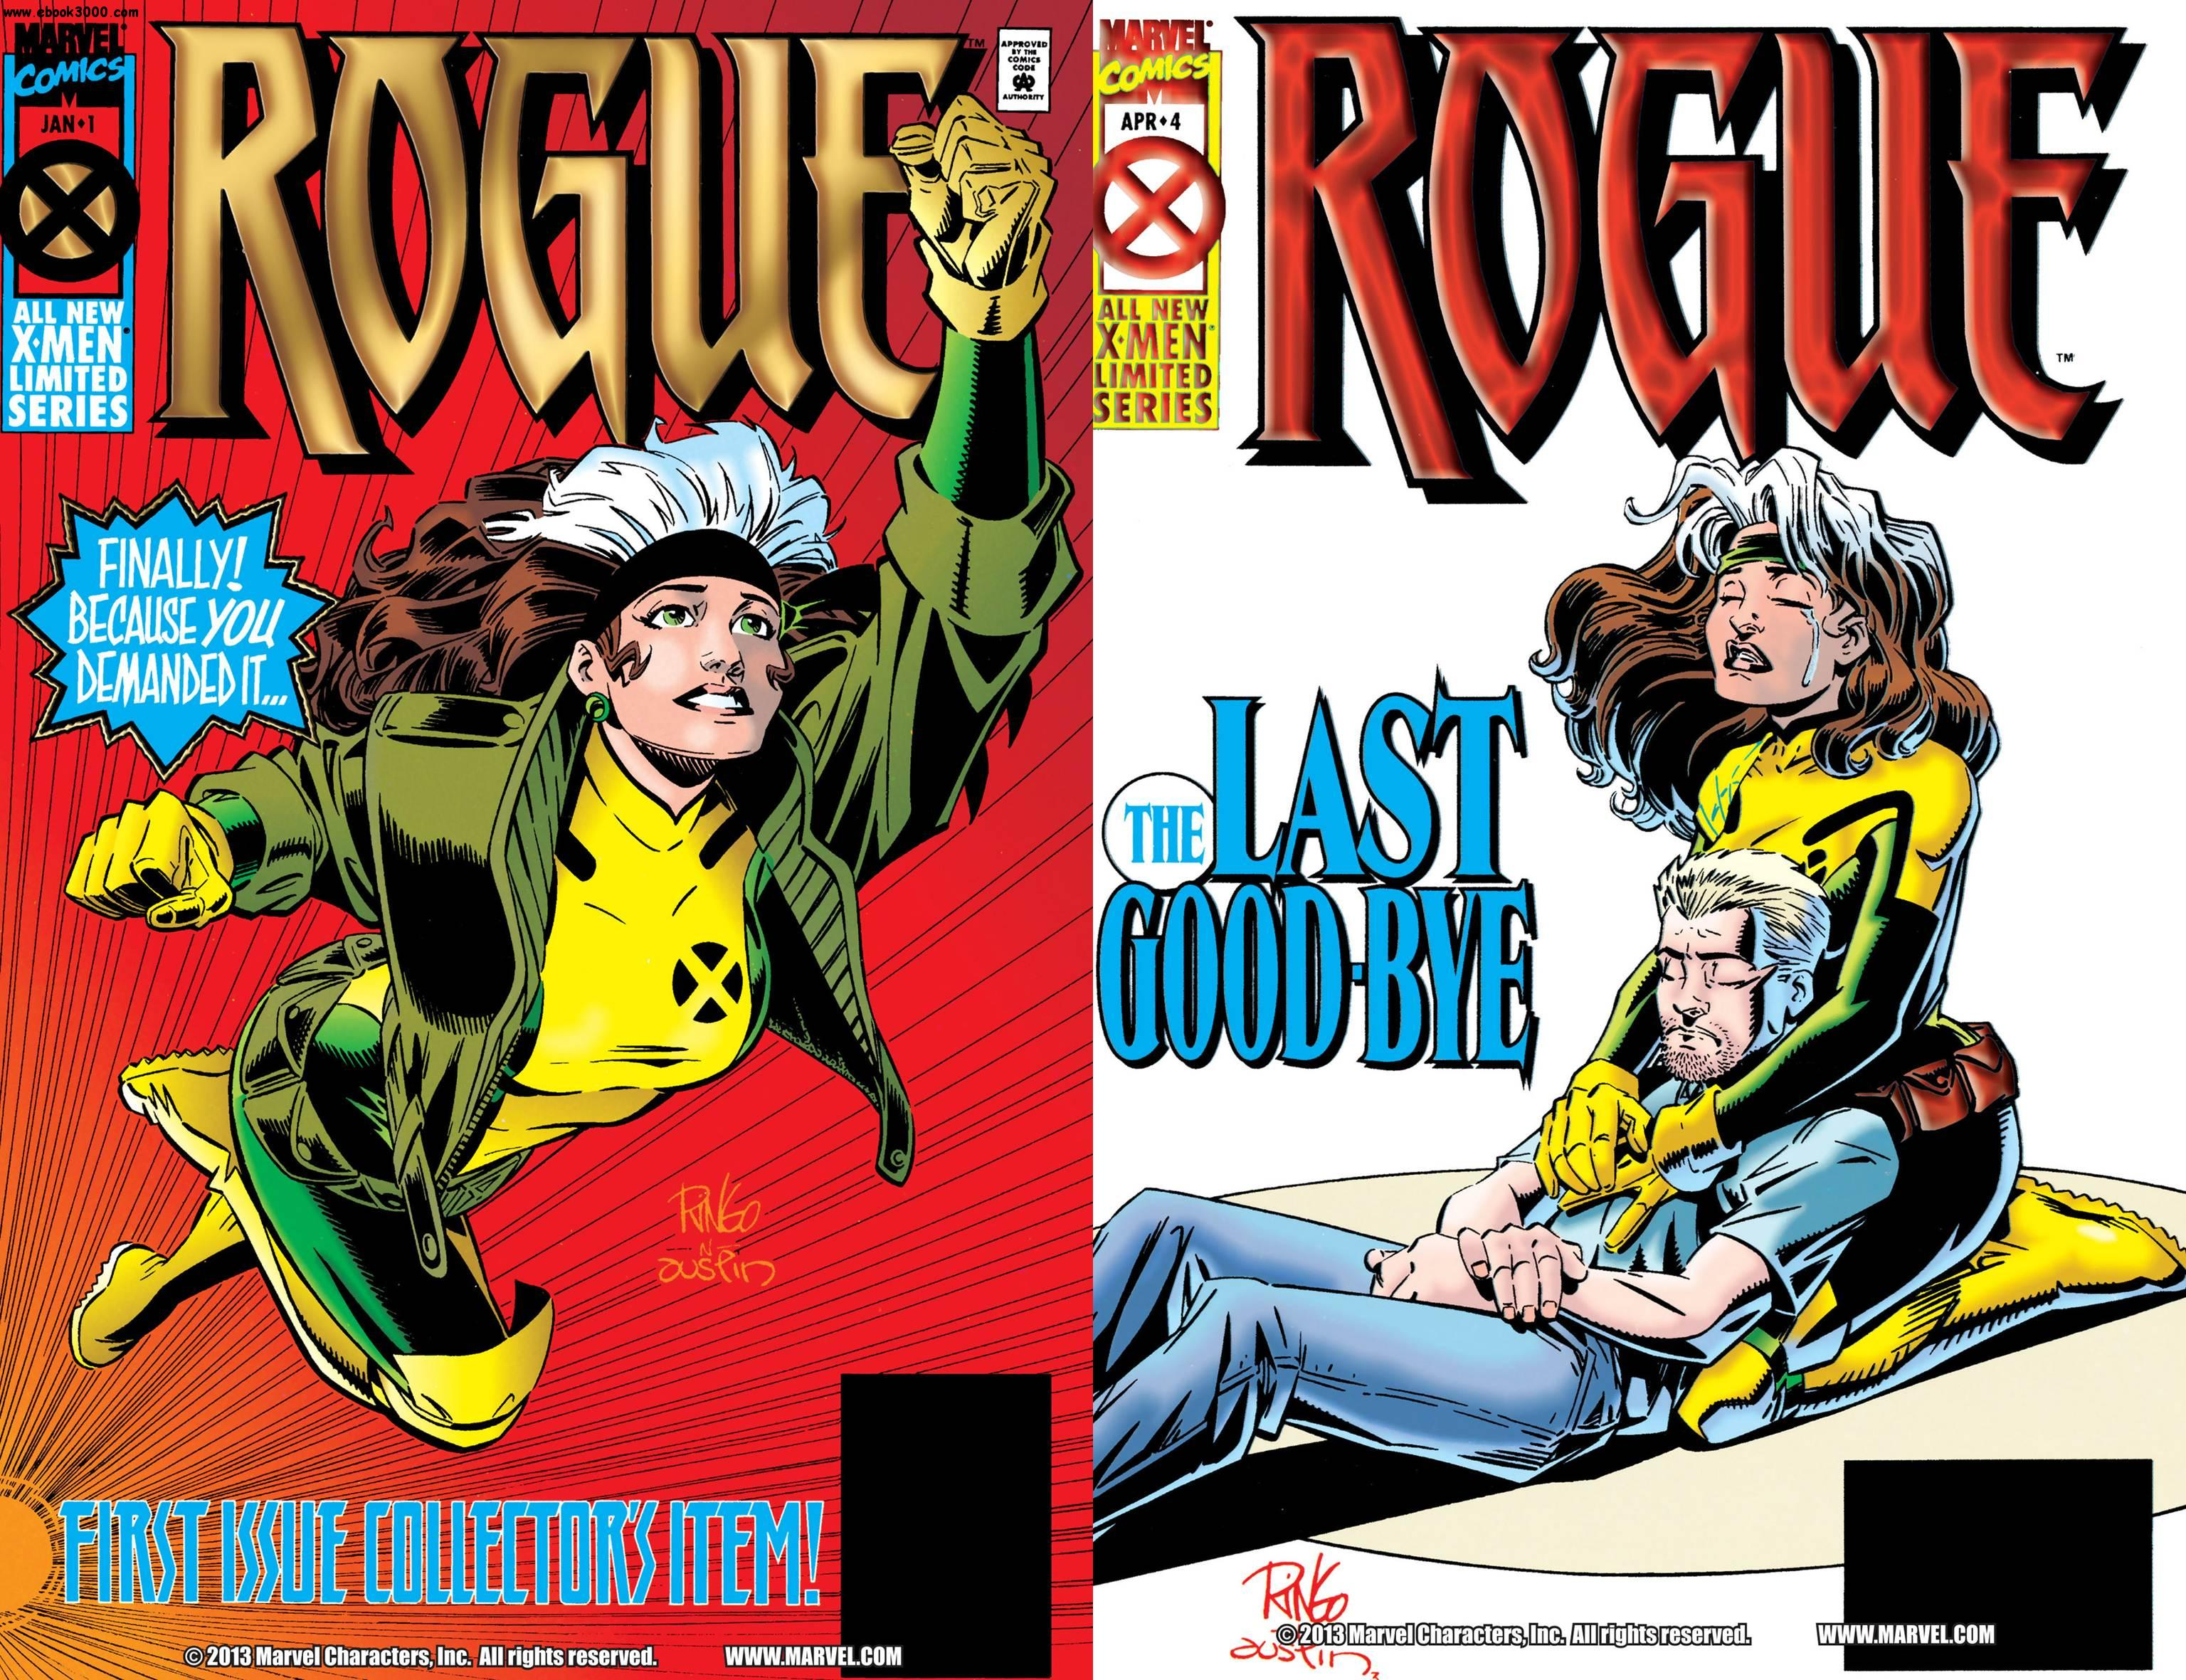 Rogue Vol.1 #1-4 (1994-1995) Complete free download